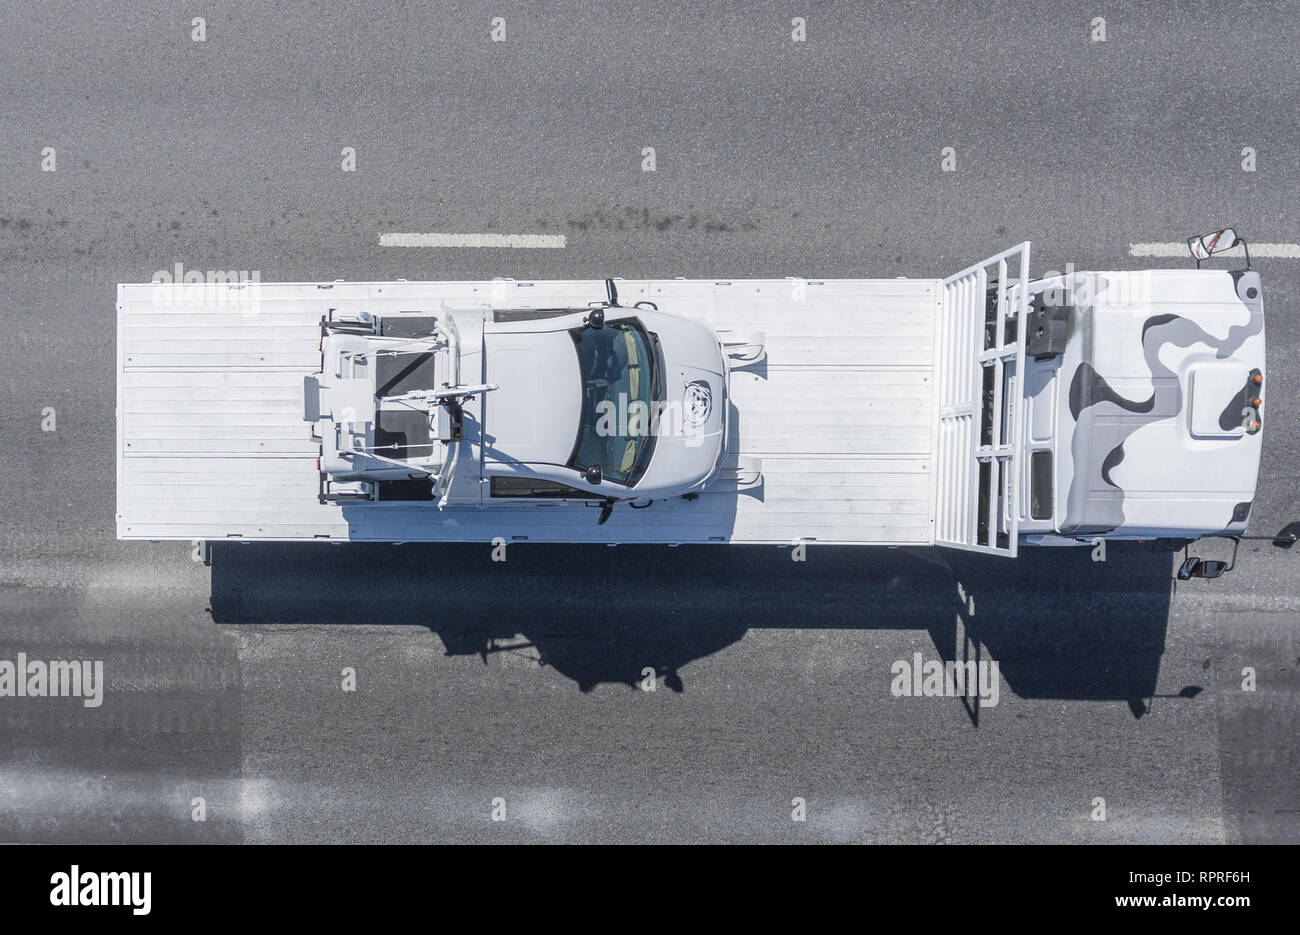 Moscow, May 9, 2018. The snowmobile TTM-1901-40 Berkut 2 is brought from Red Square after the Victory Parade, top view. - Stock Image